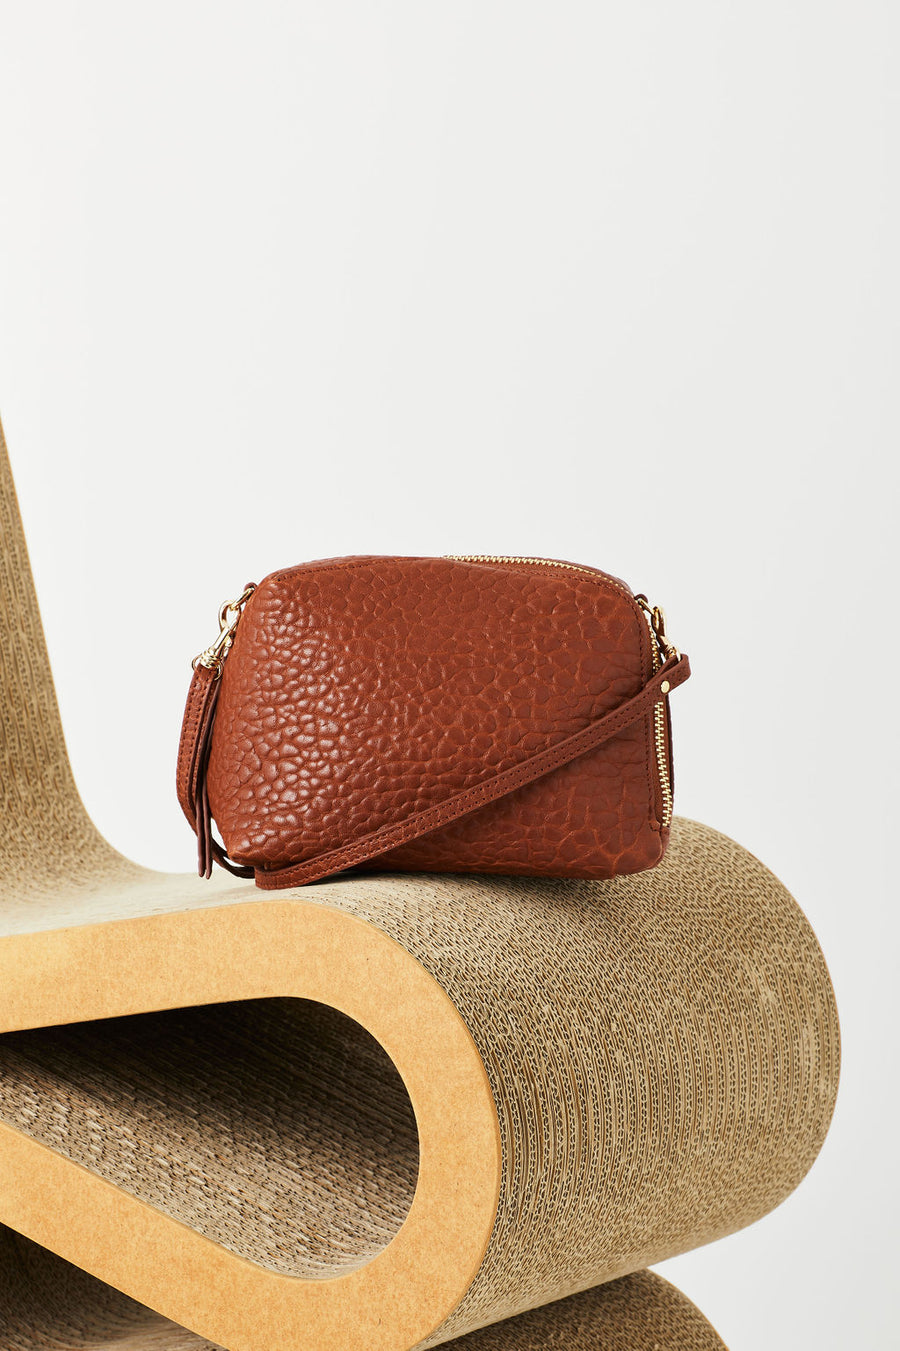 Vash - Izar Mini Crossbody bag in Tan